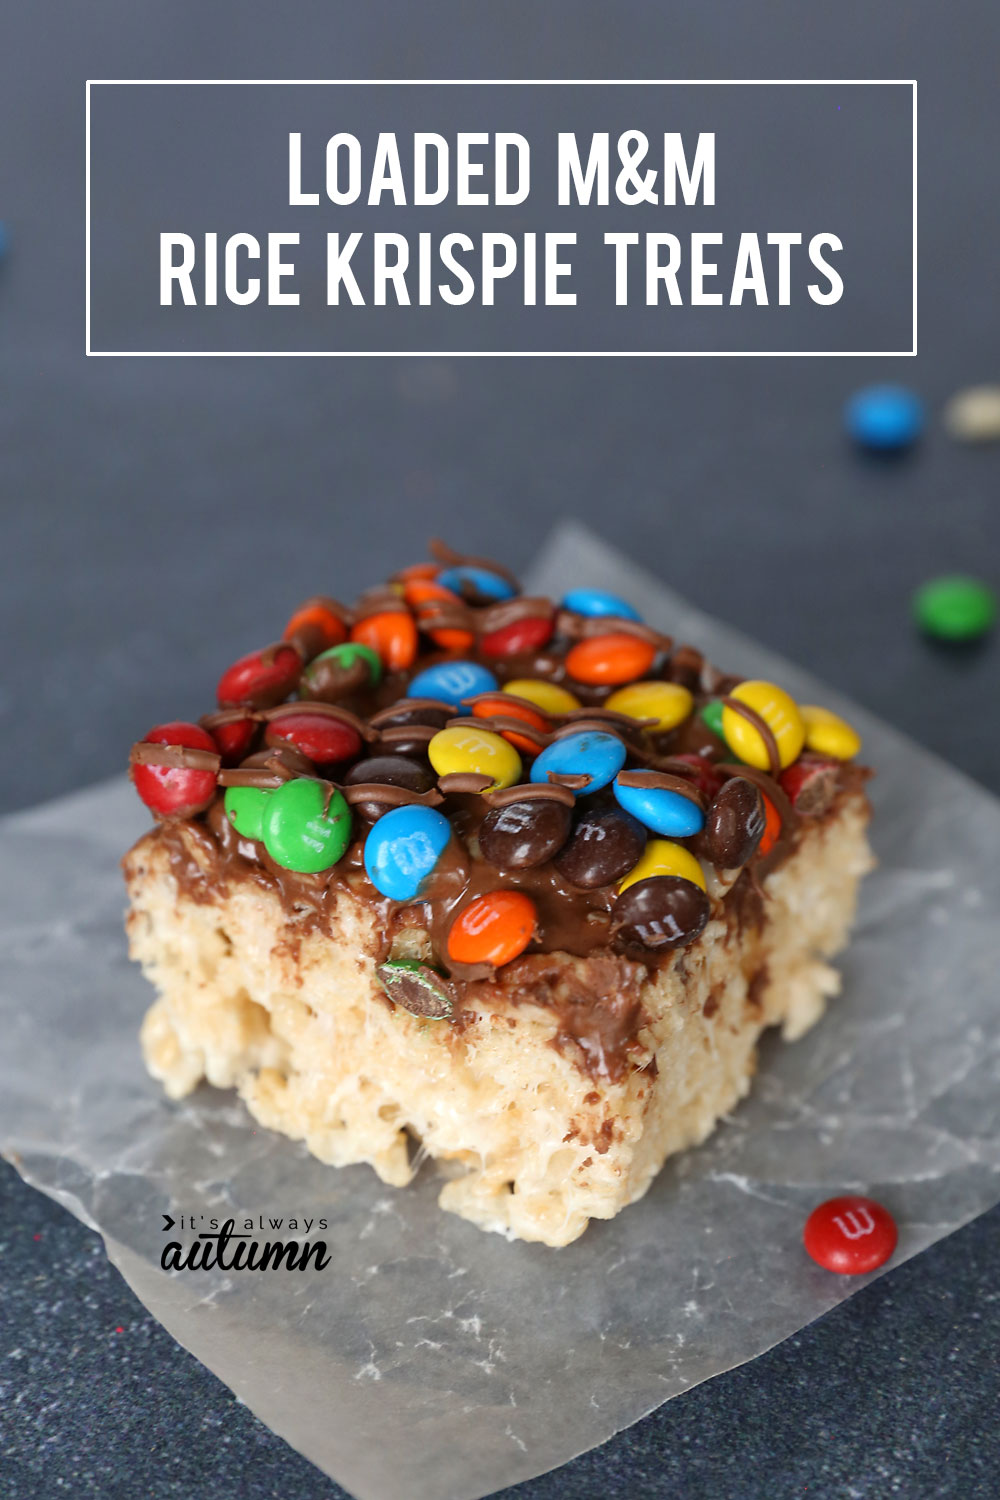 These loaded M&M rice krispie treats are delicious! Extra chewy and full of chocolate flavor. Click through for the easy recipe.